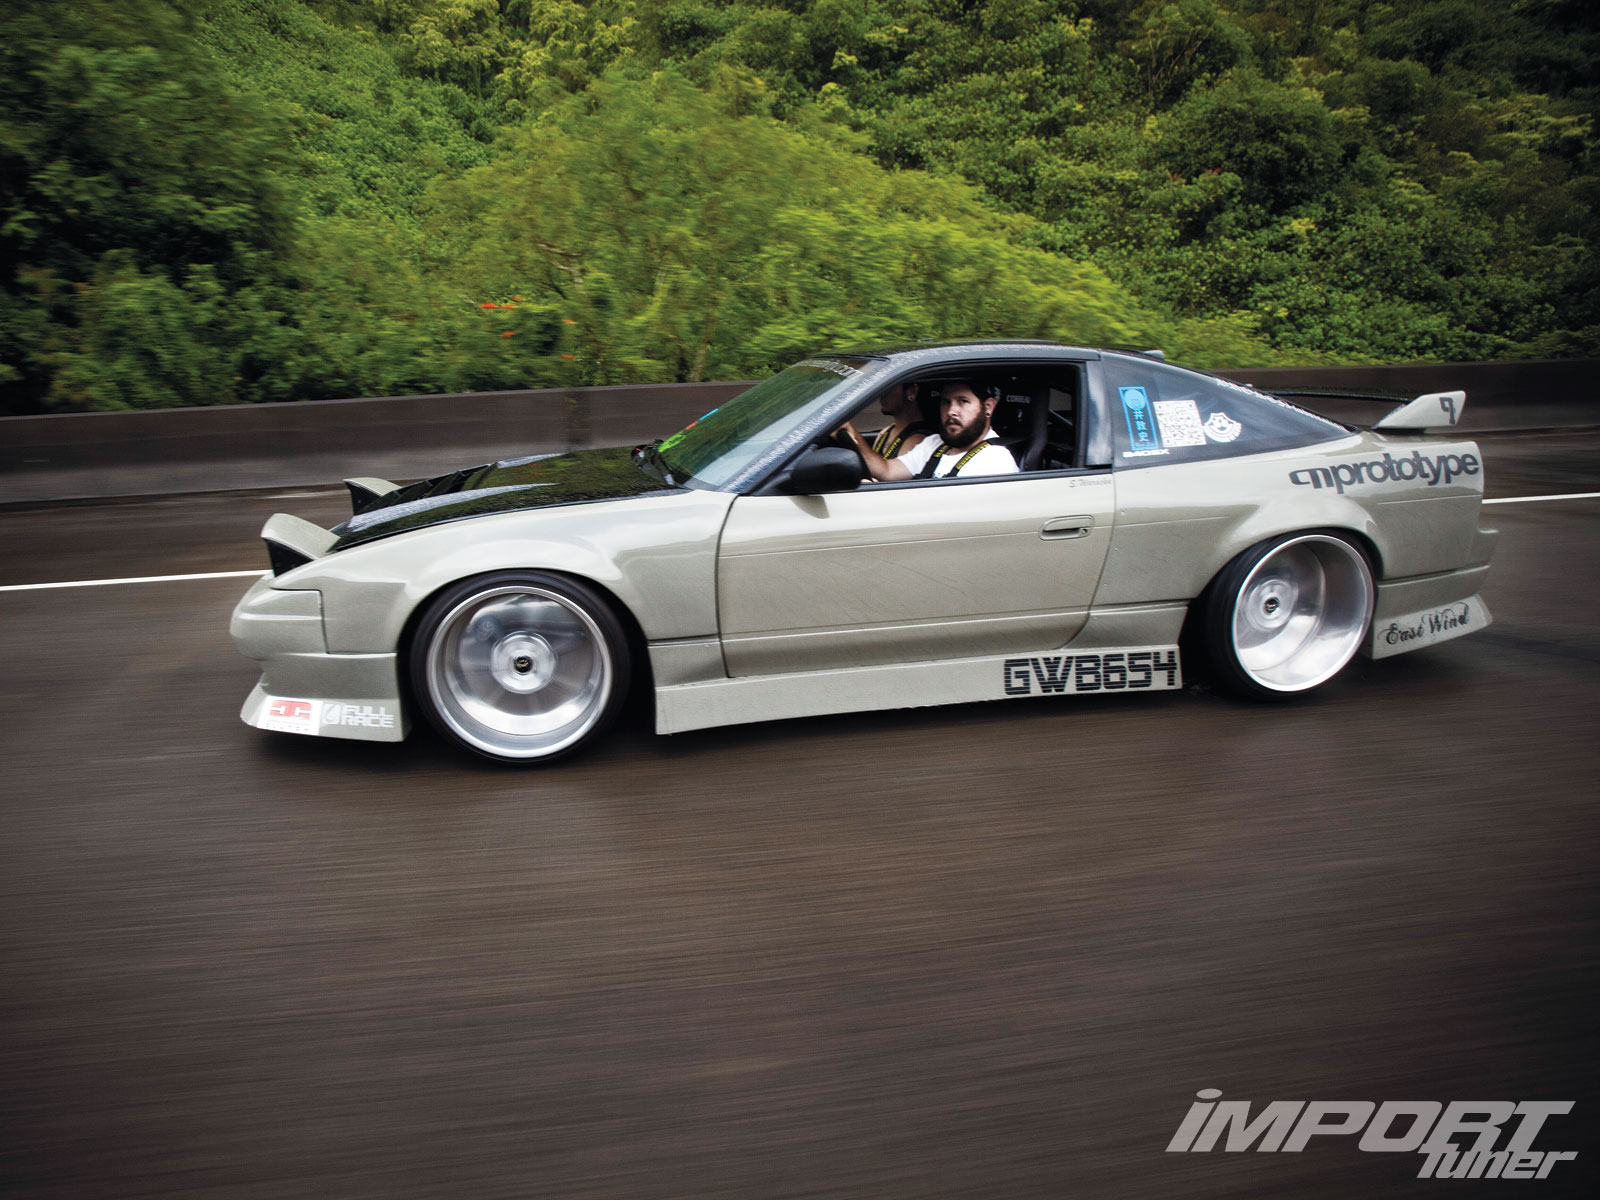 hight resolution of impp 1211 01 o 1991 nissan 240sx uras type 4 side skirts